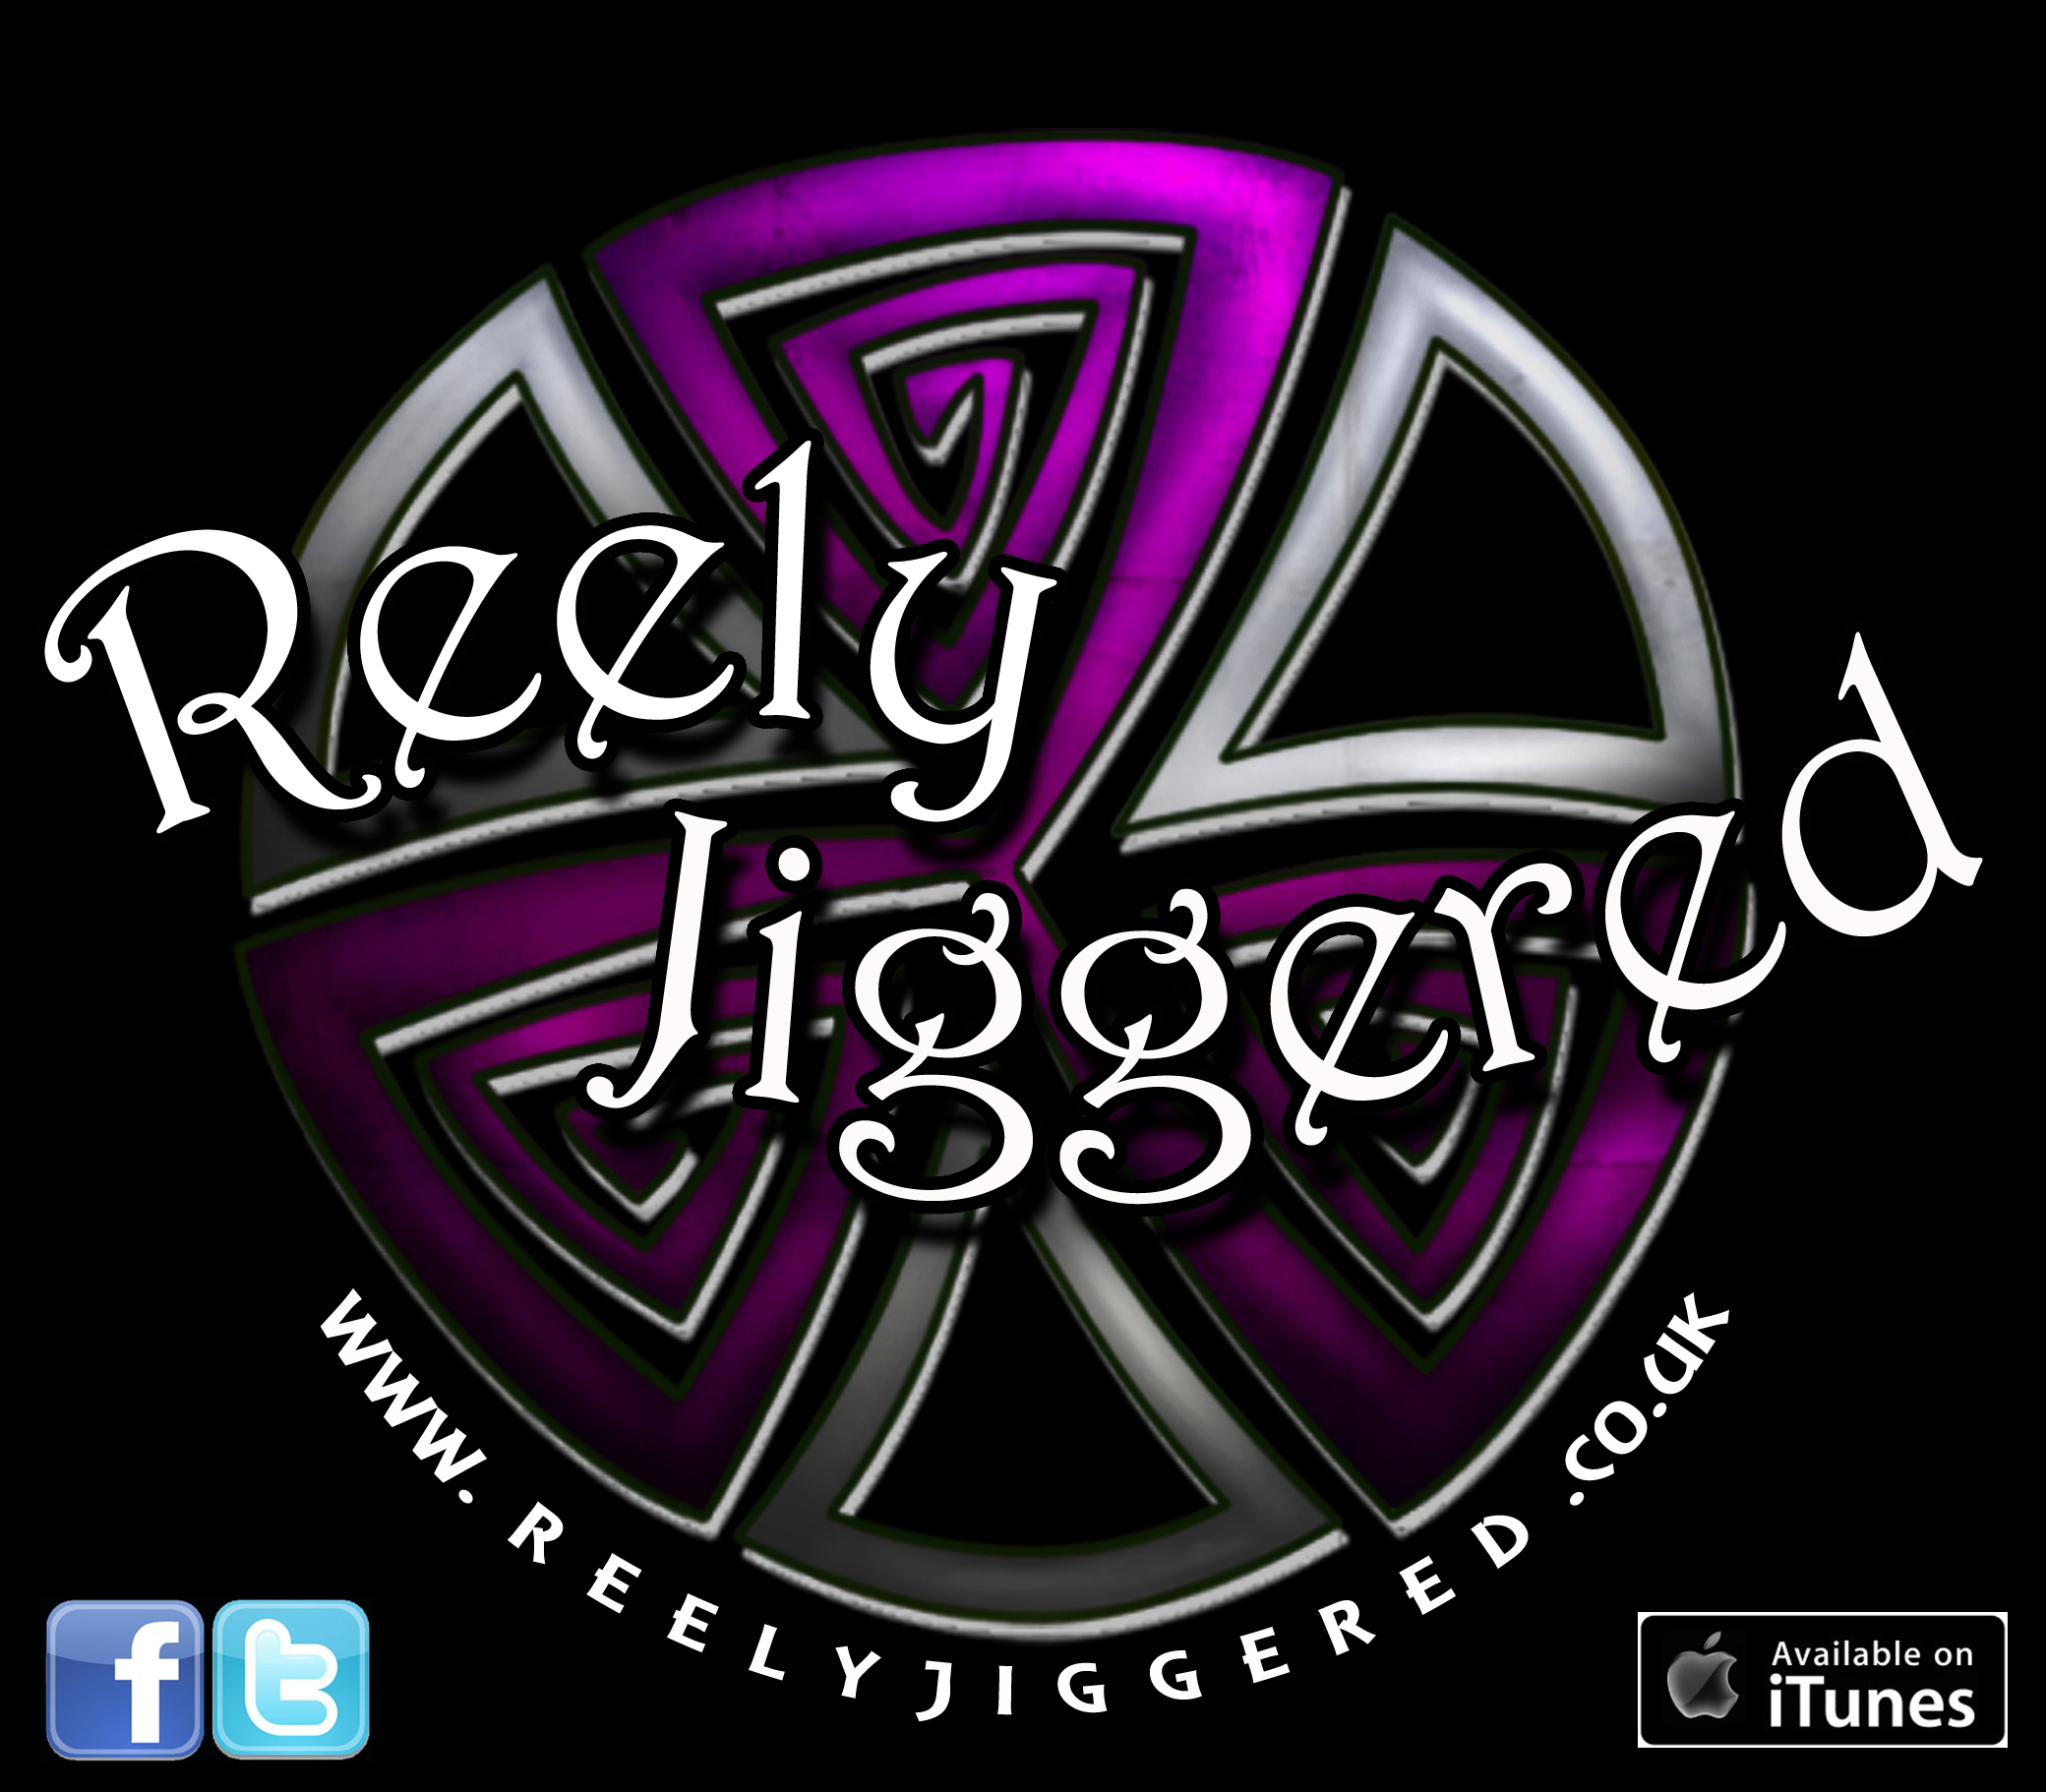 Reely Jiggered - logo with fb twitter itunes